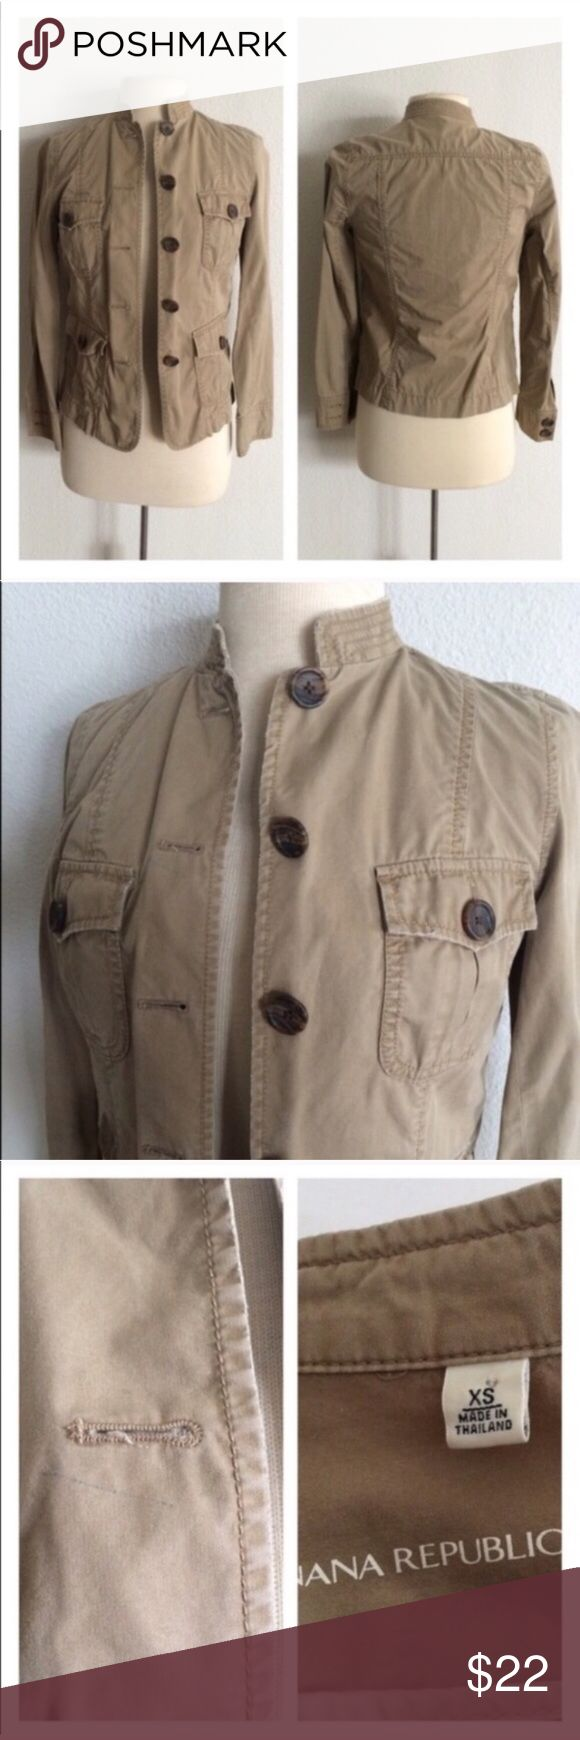 """Banana Republic jacket Banana Republic jacket. Size XS. Measures 24"""" long with a 32"""" bust. 100% cotton. Four functional front pockets. This has some distress to it, but what I can find from my research of this jacket, it appears to have been manufactured it that way. *There is a blue mark above the left chest. Appears to be a light pen mark. This item has been priced accordingly.   🚫NO TRADES🚫 💲Reasonable offers accepted💲 💰Ask about bundle discounts💰 Banana Republic Jackets & Coats"""